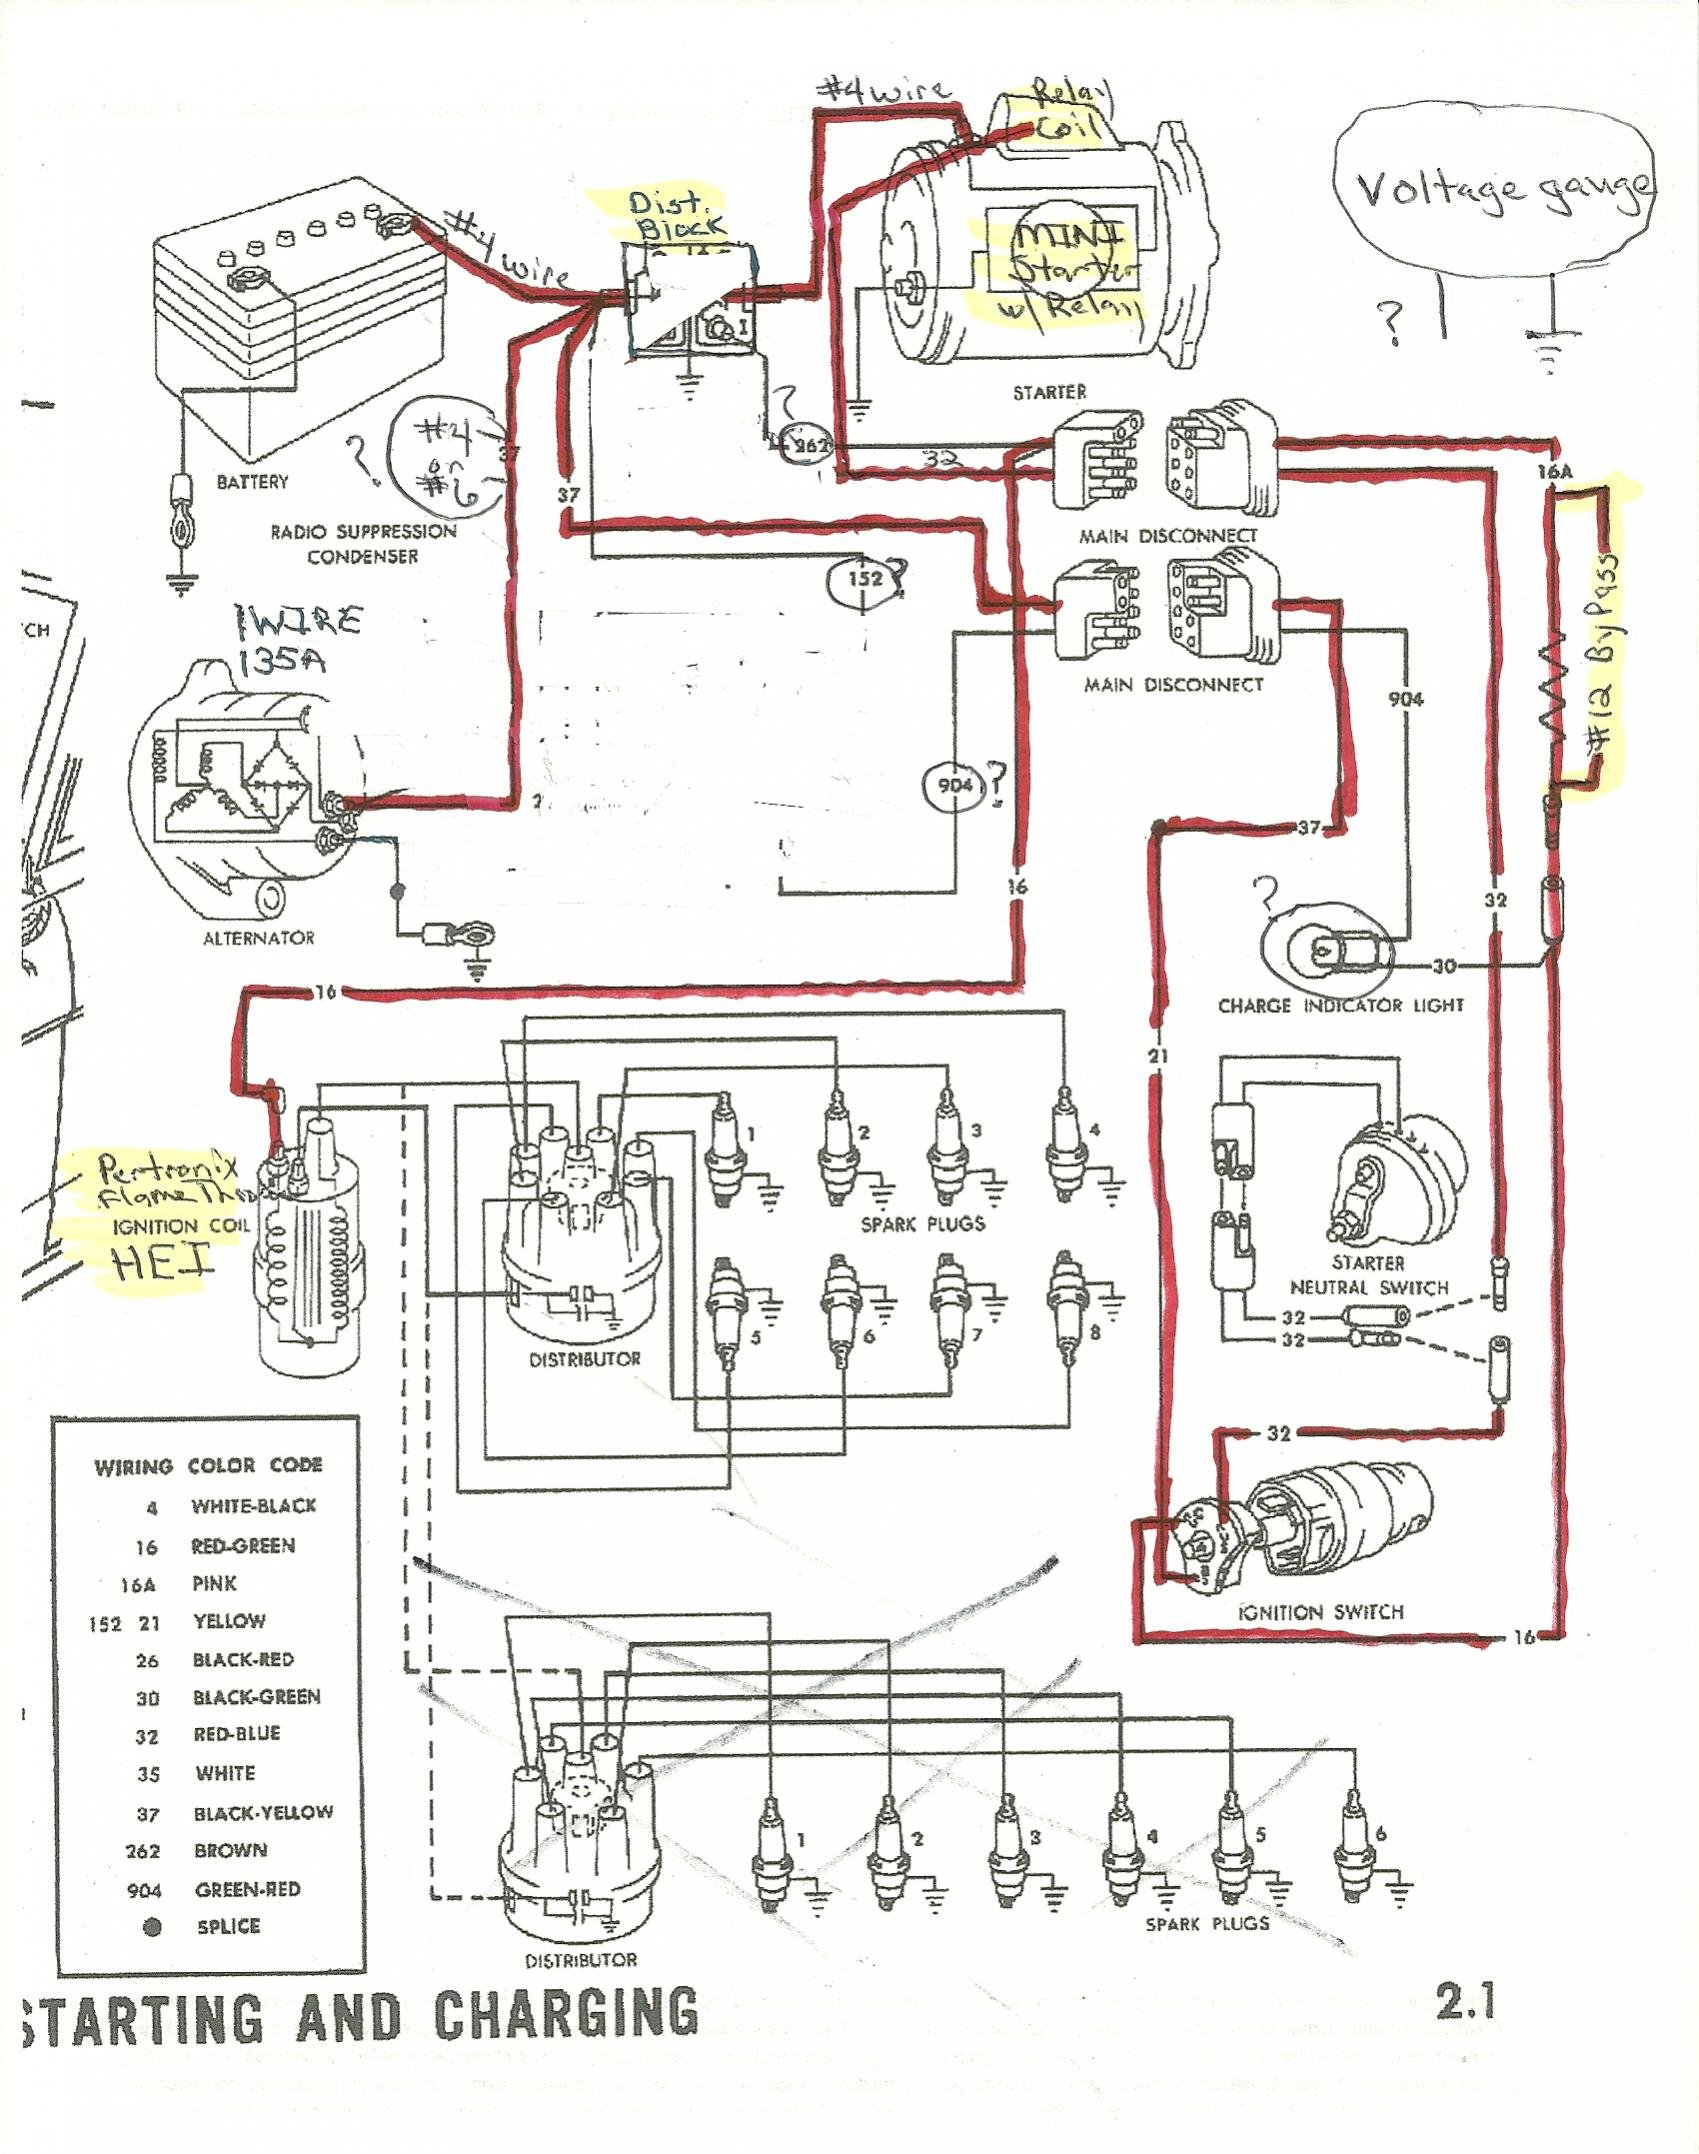 1965 Ford Mustang Alternator Wiring Diagram Starter Relay Fan 460 And Distributor Forum Rh Allfordmustangs Com